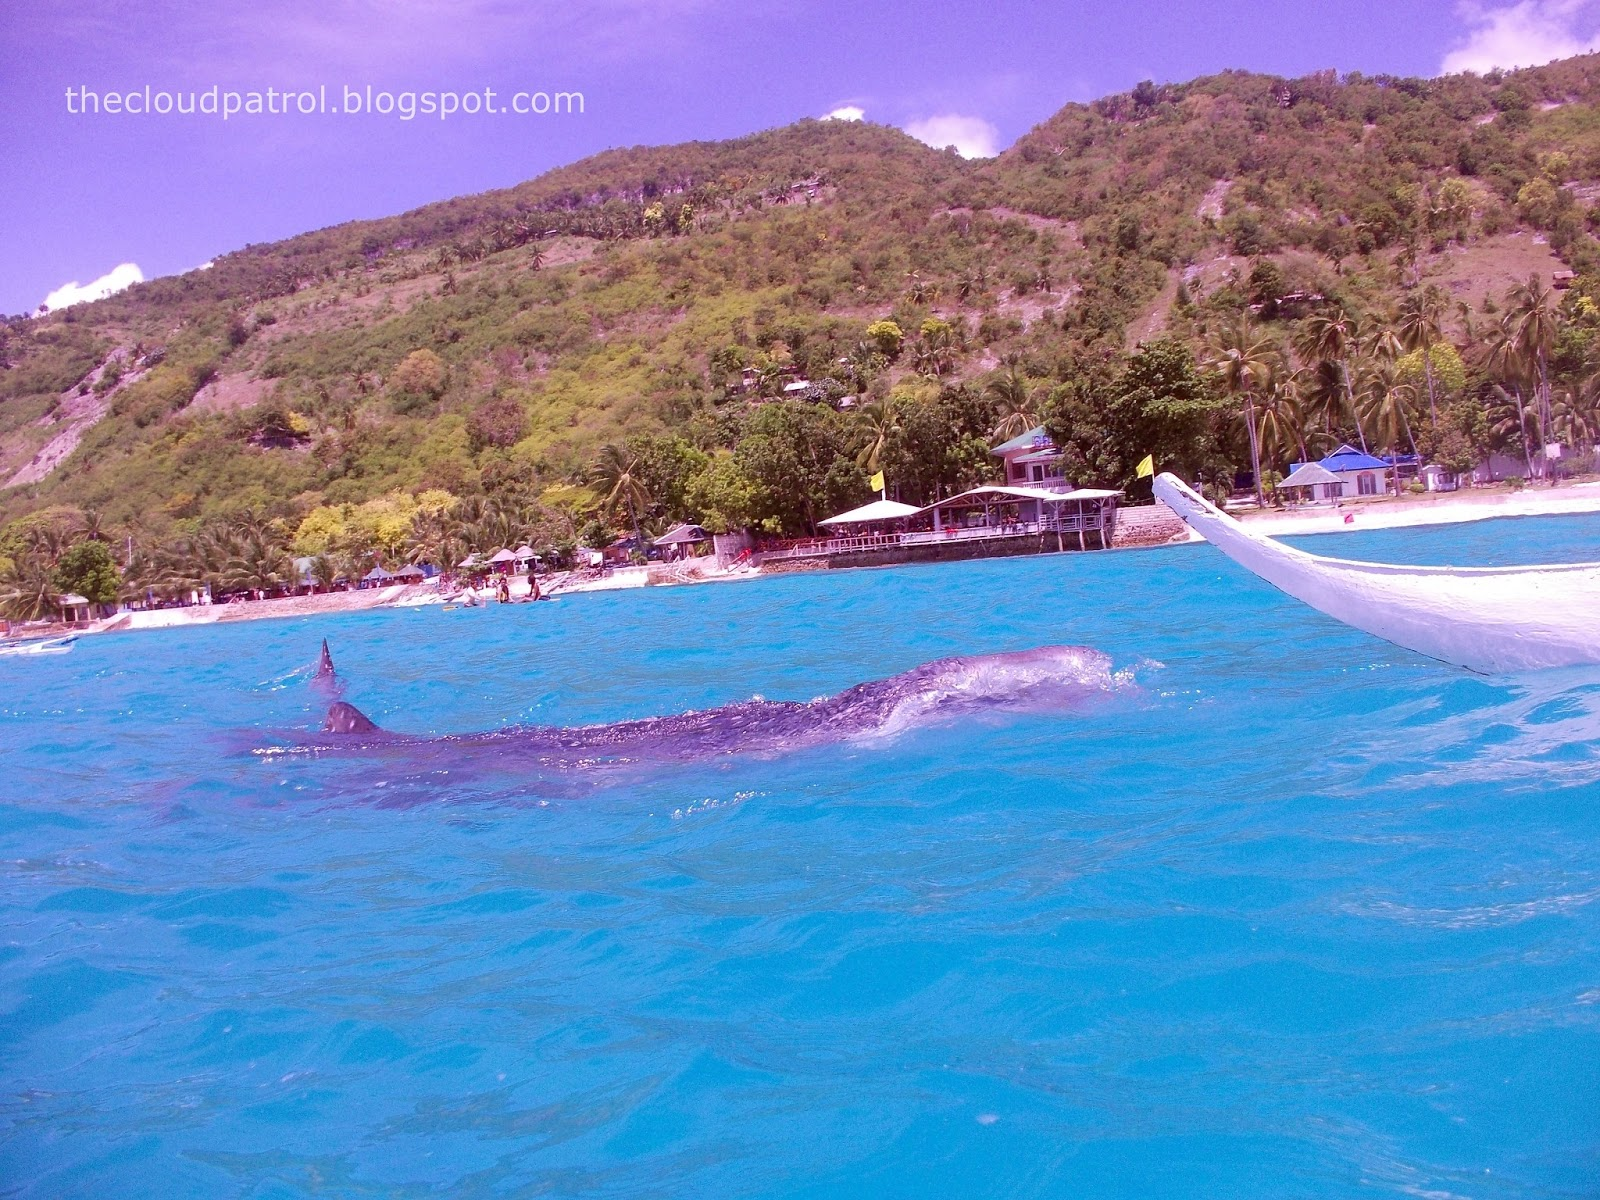 Butanding, whale shark, cebu, oslob, philippines, watchig, swimming, beach